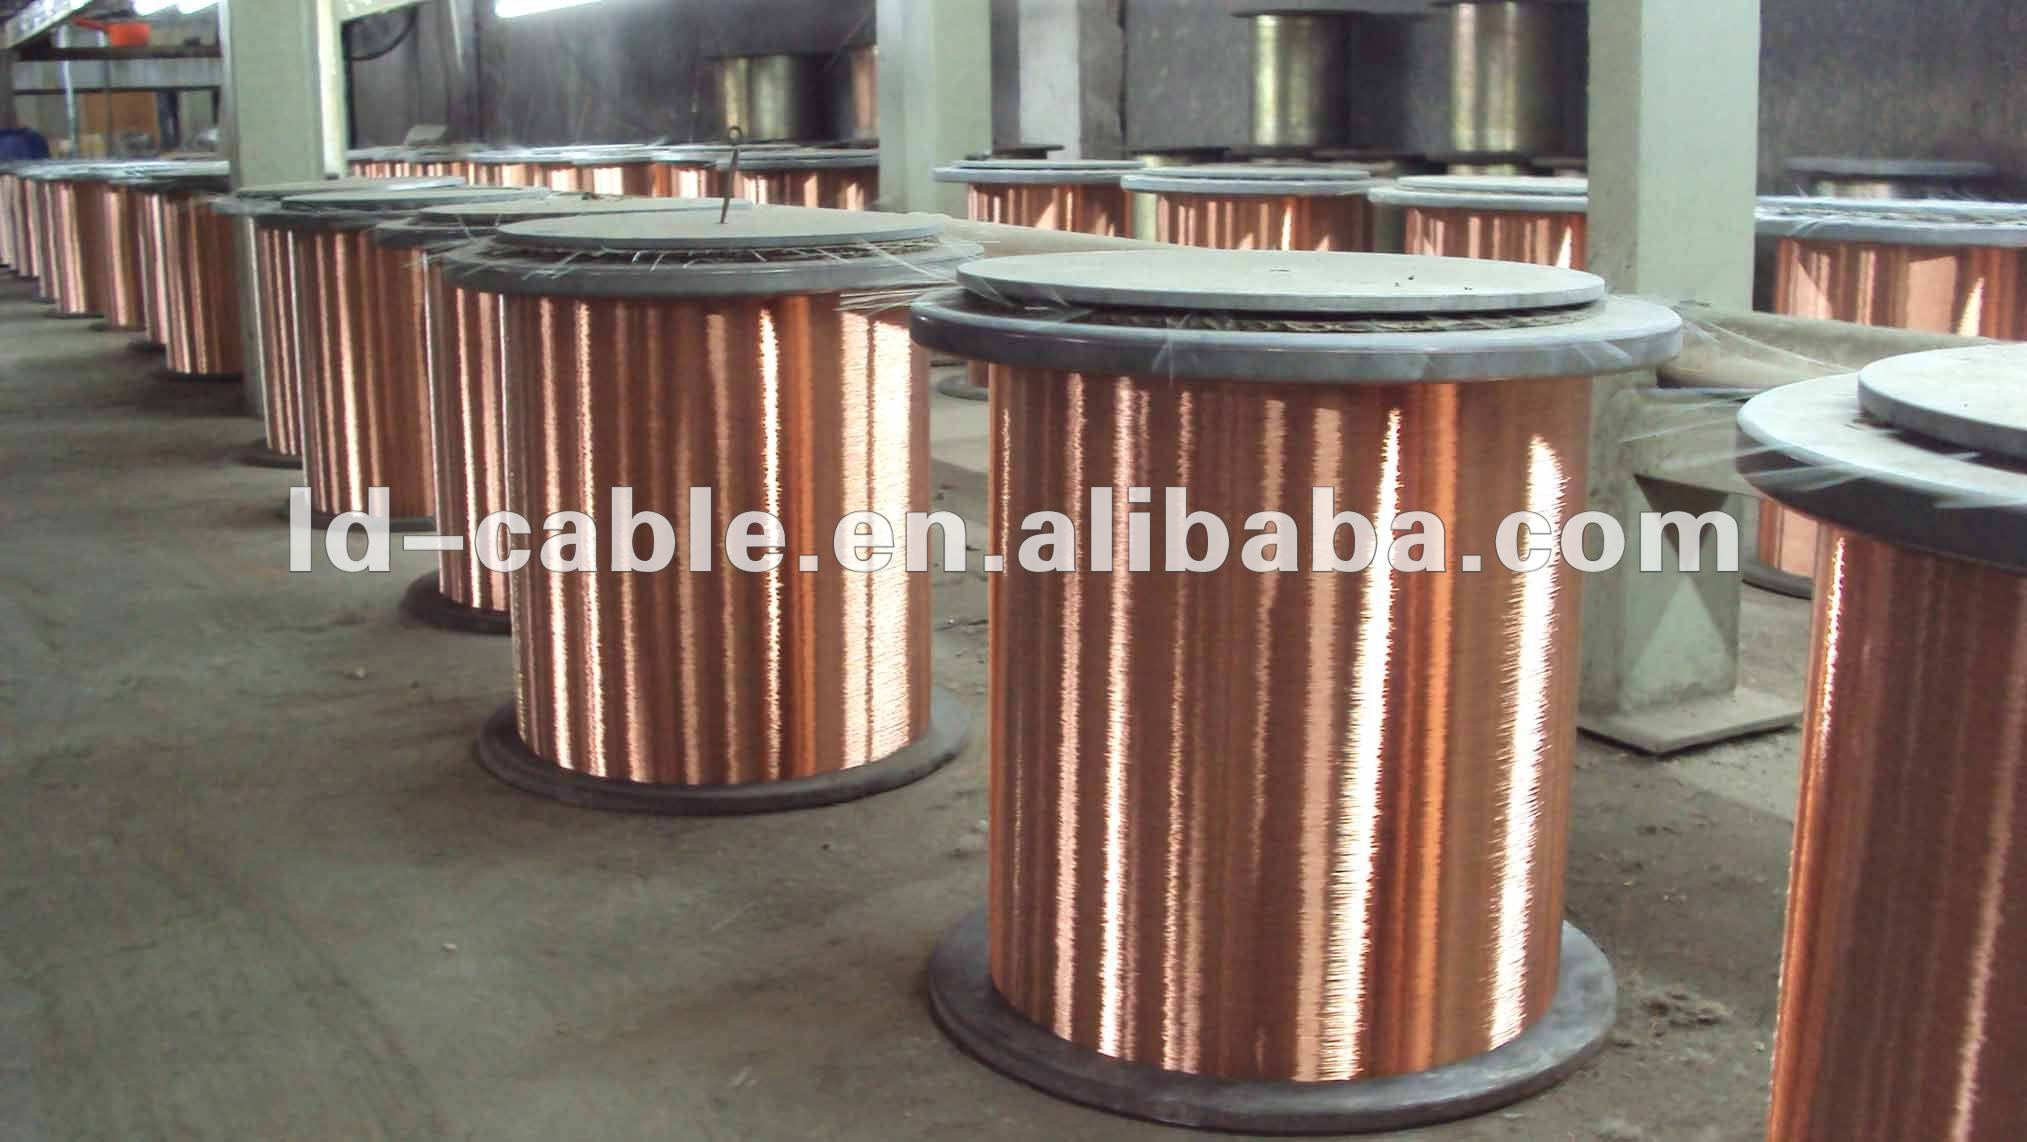 0.10-3.0 mm copper coated aluminium wire CCAM bare wire